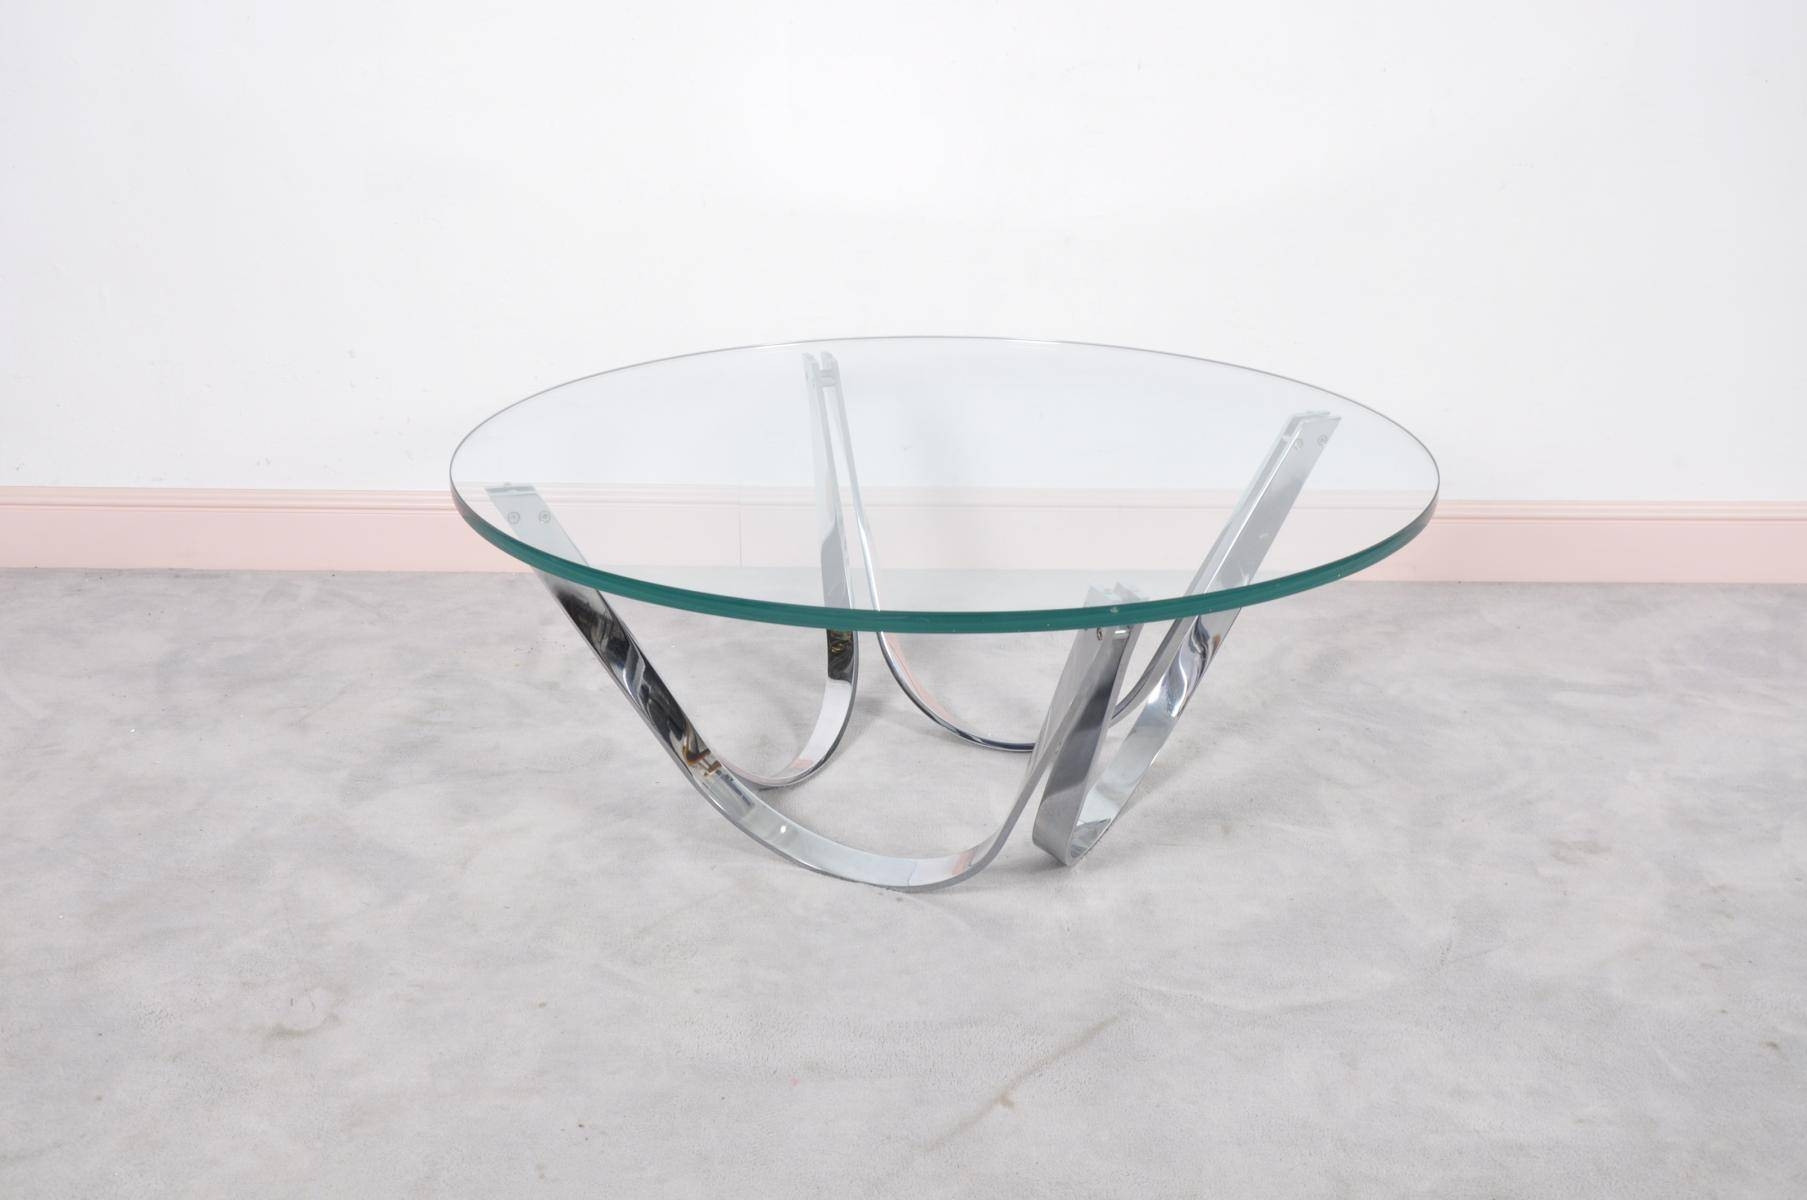 Coffee Tables: Marvellous Round Glass Coffee Tables Designs Large regarding Unusual Glass Coffee Tables (Image 12 of 30)